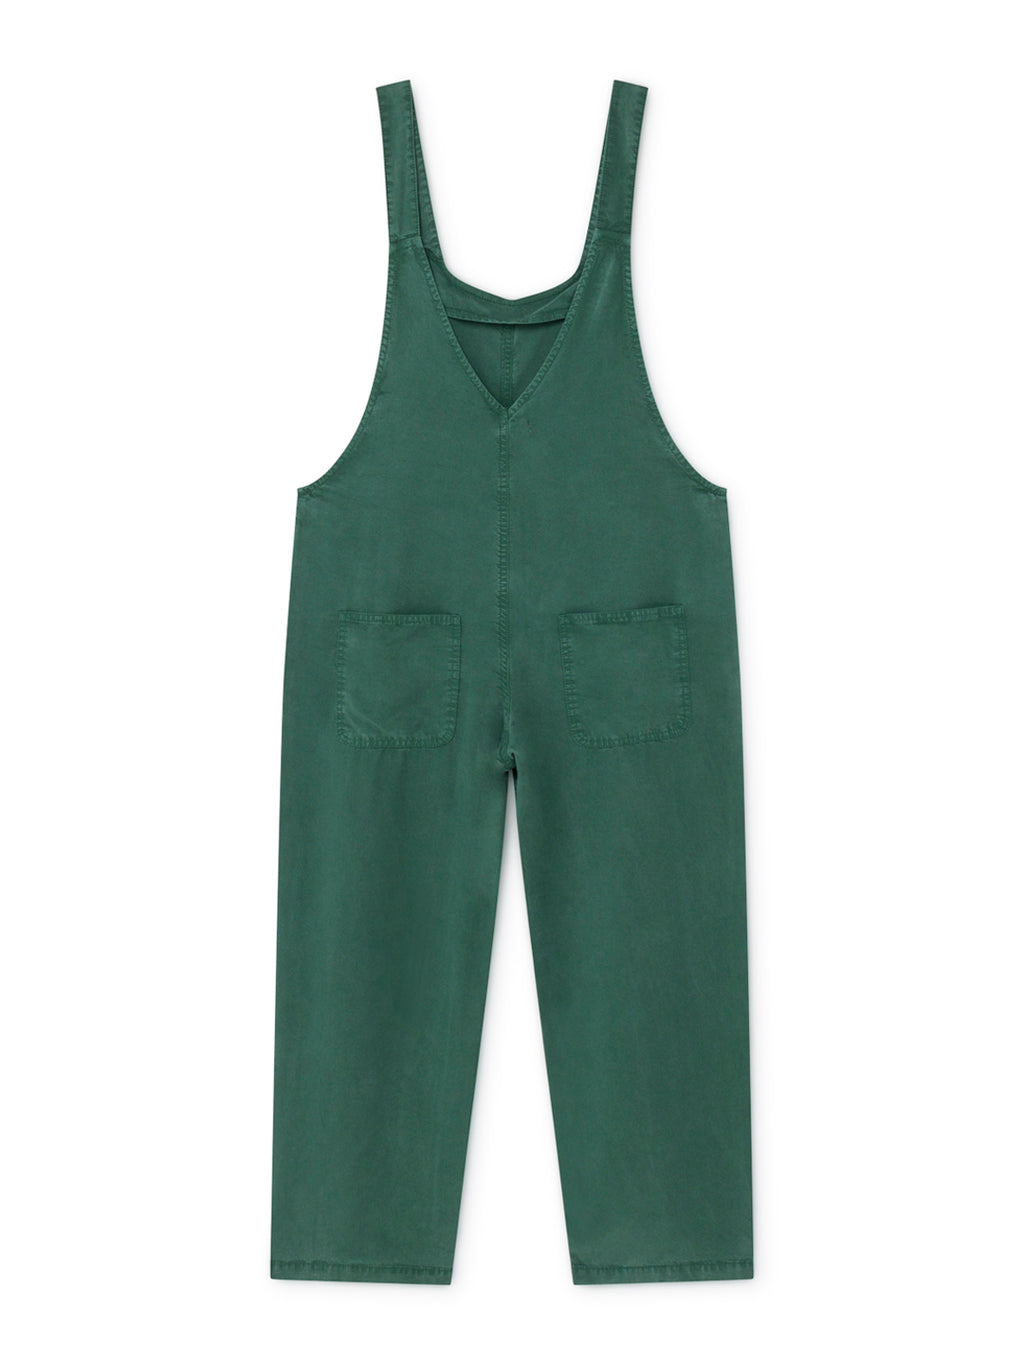 TWOTHIRDS Womens Pants: Teshima - Trekking Green back